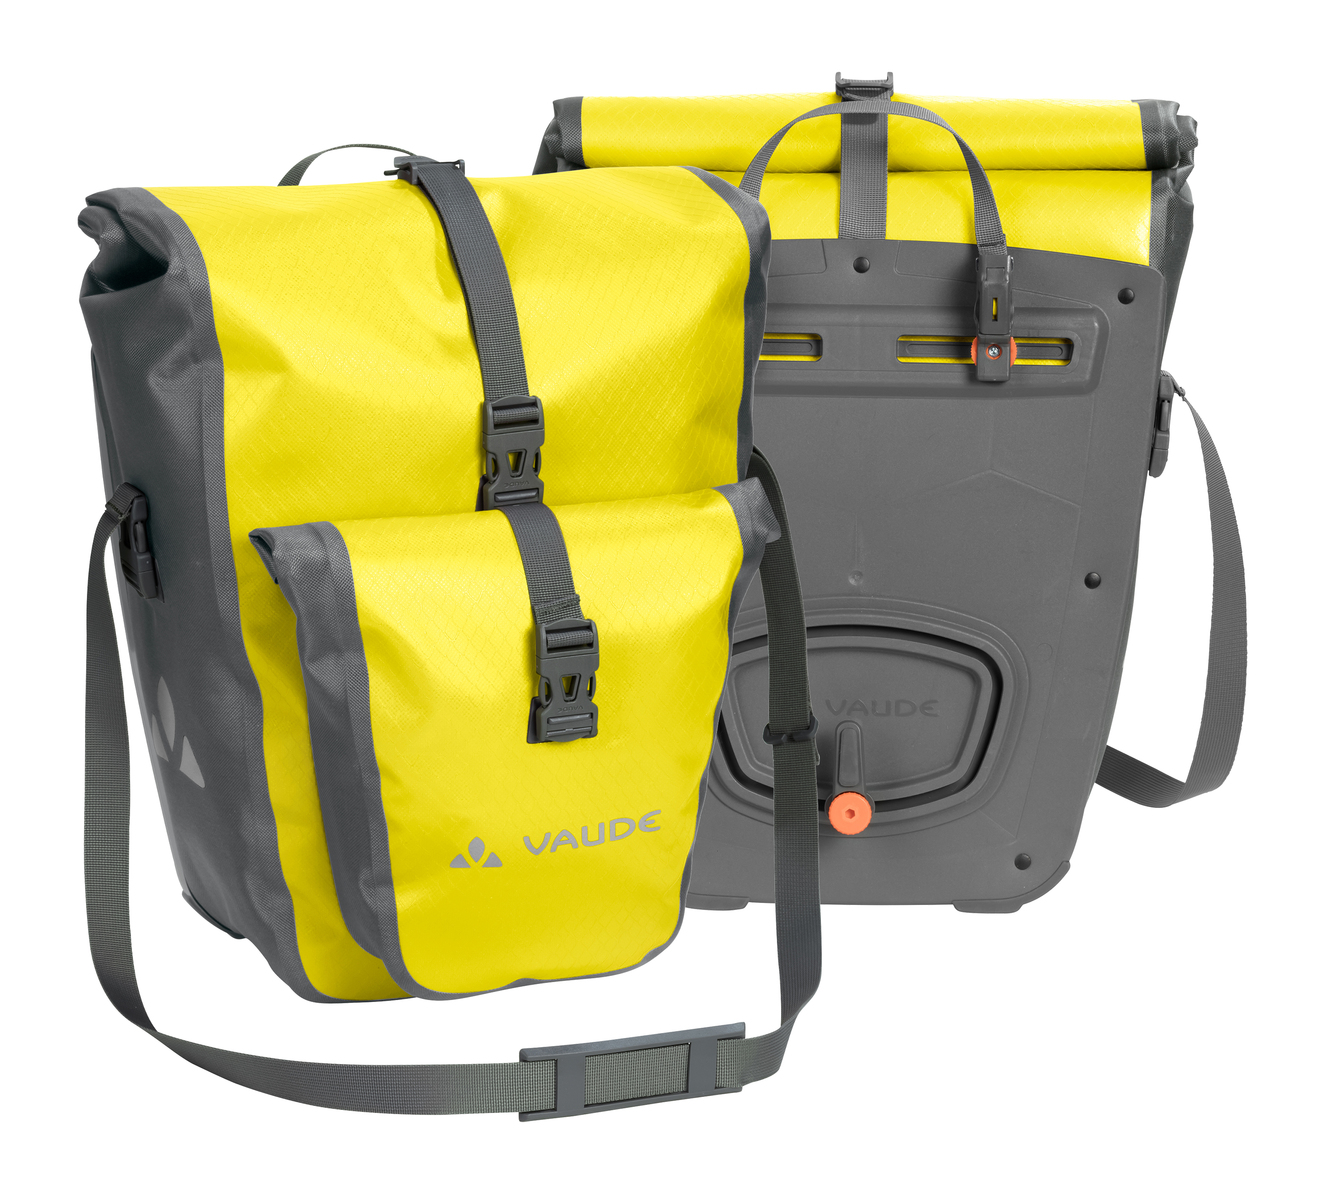 VAUDE Aqua Back Plus canary  - VAUDE Aqua Back Plus canary